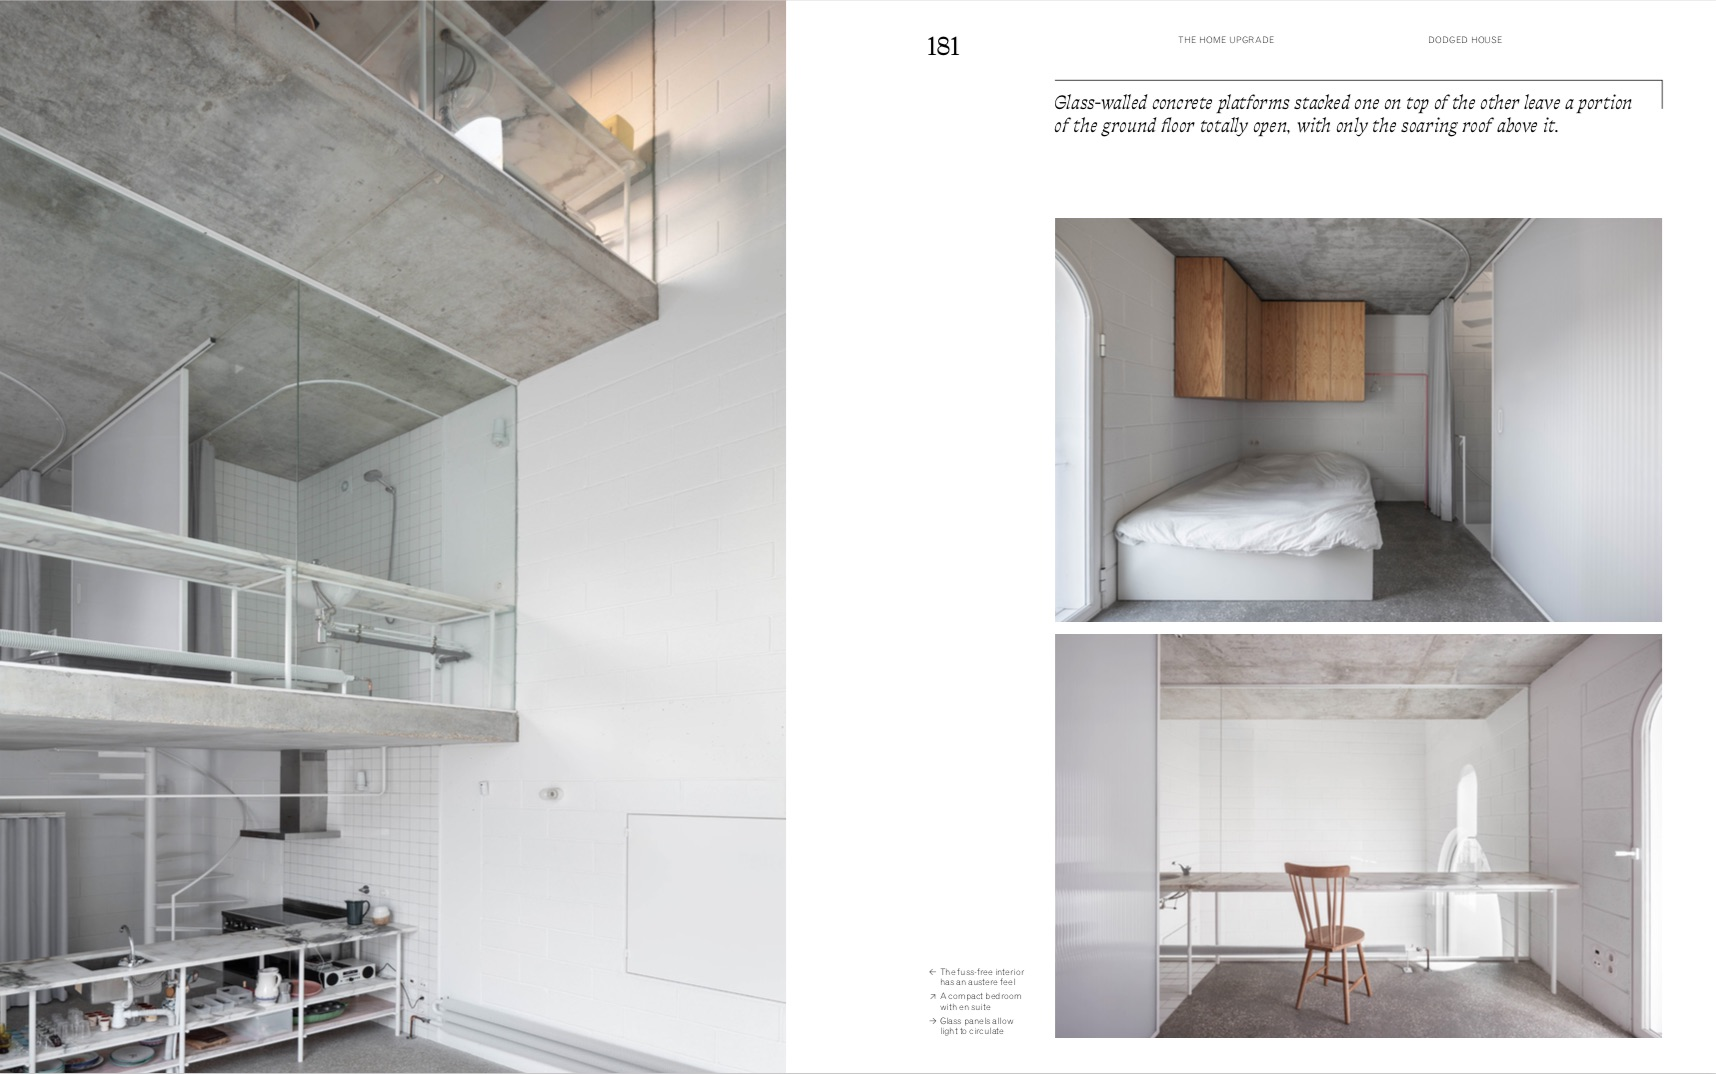 By Gestalten & Tessa Pearson from The Home Upgrade copyright Gestalten 2019